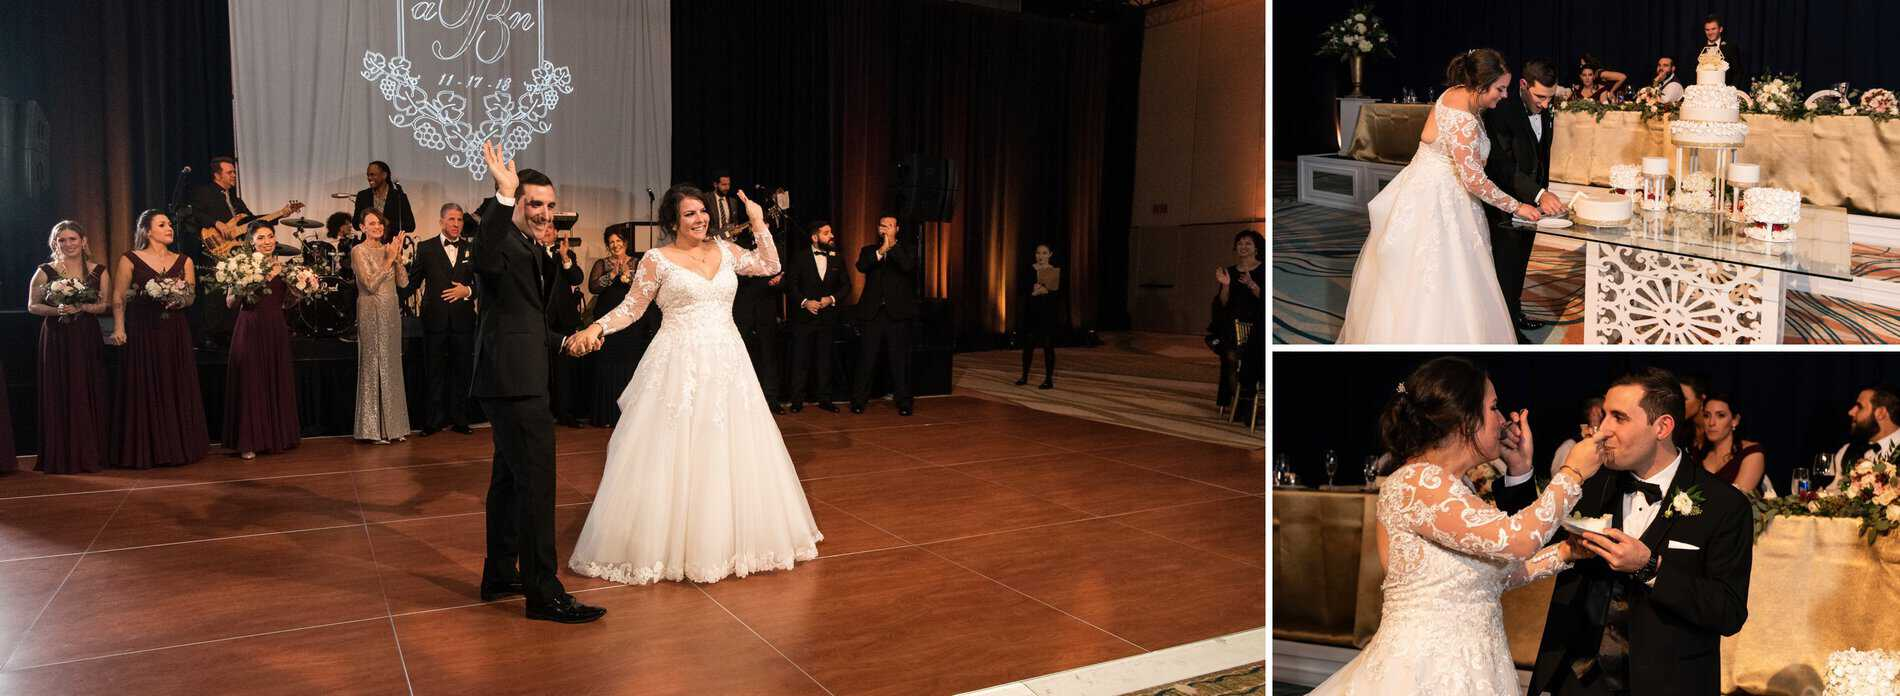 First Dance at Disney Swan and Dolphin ballroom.